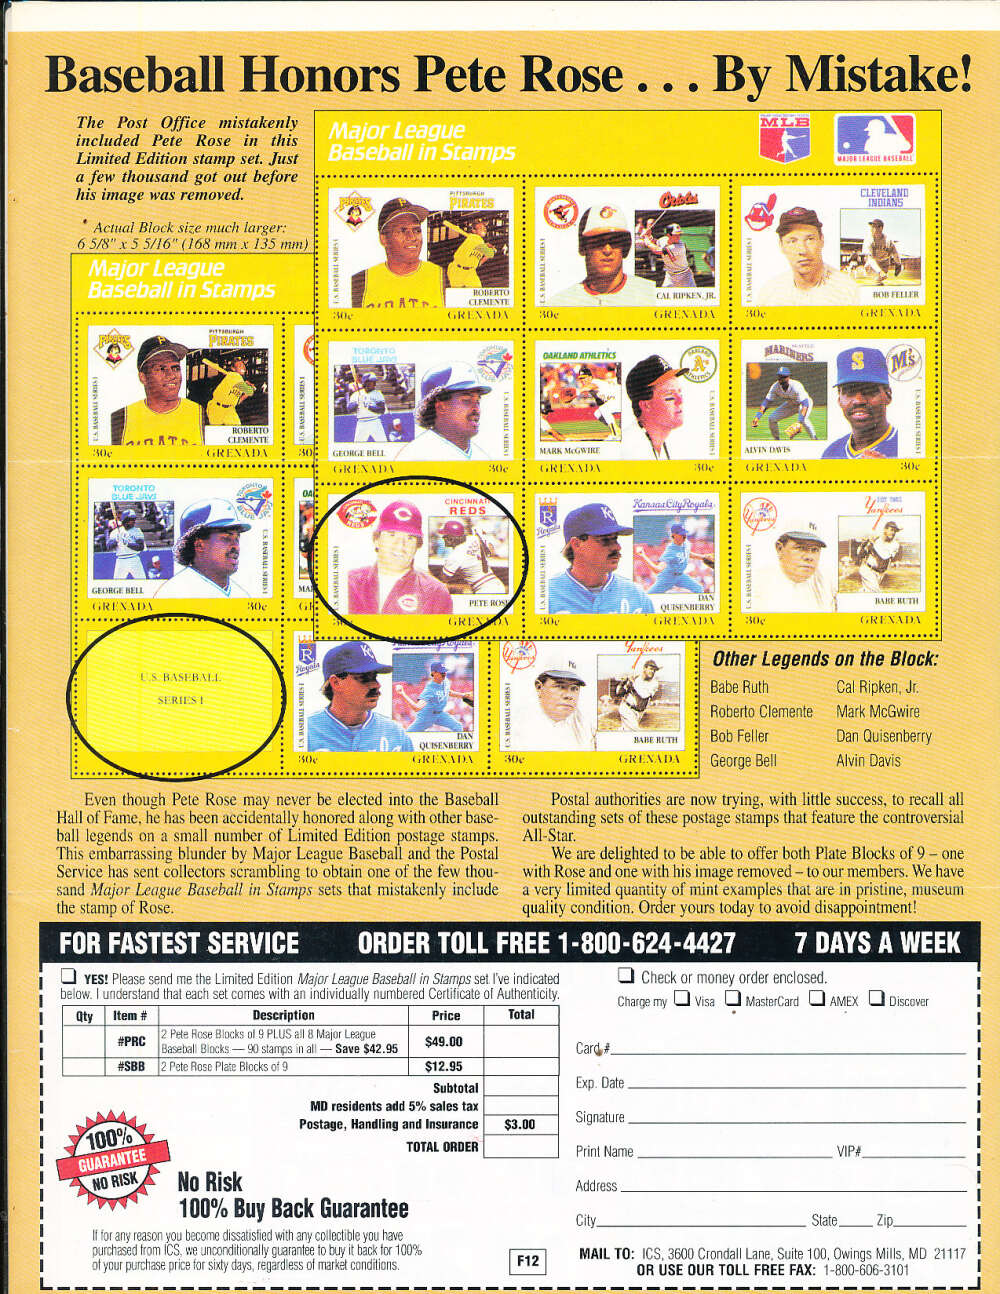 pete rose stamp promotional sheet advertisement promo 8x10 color